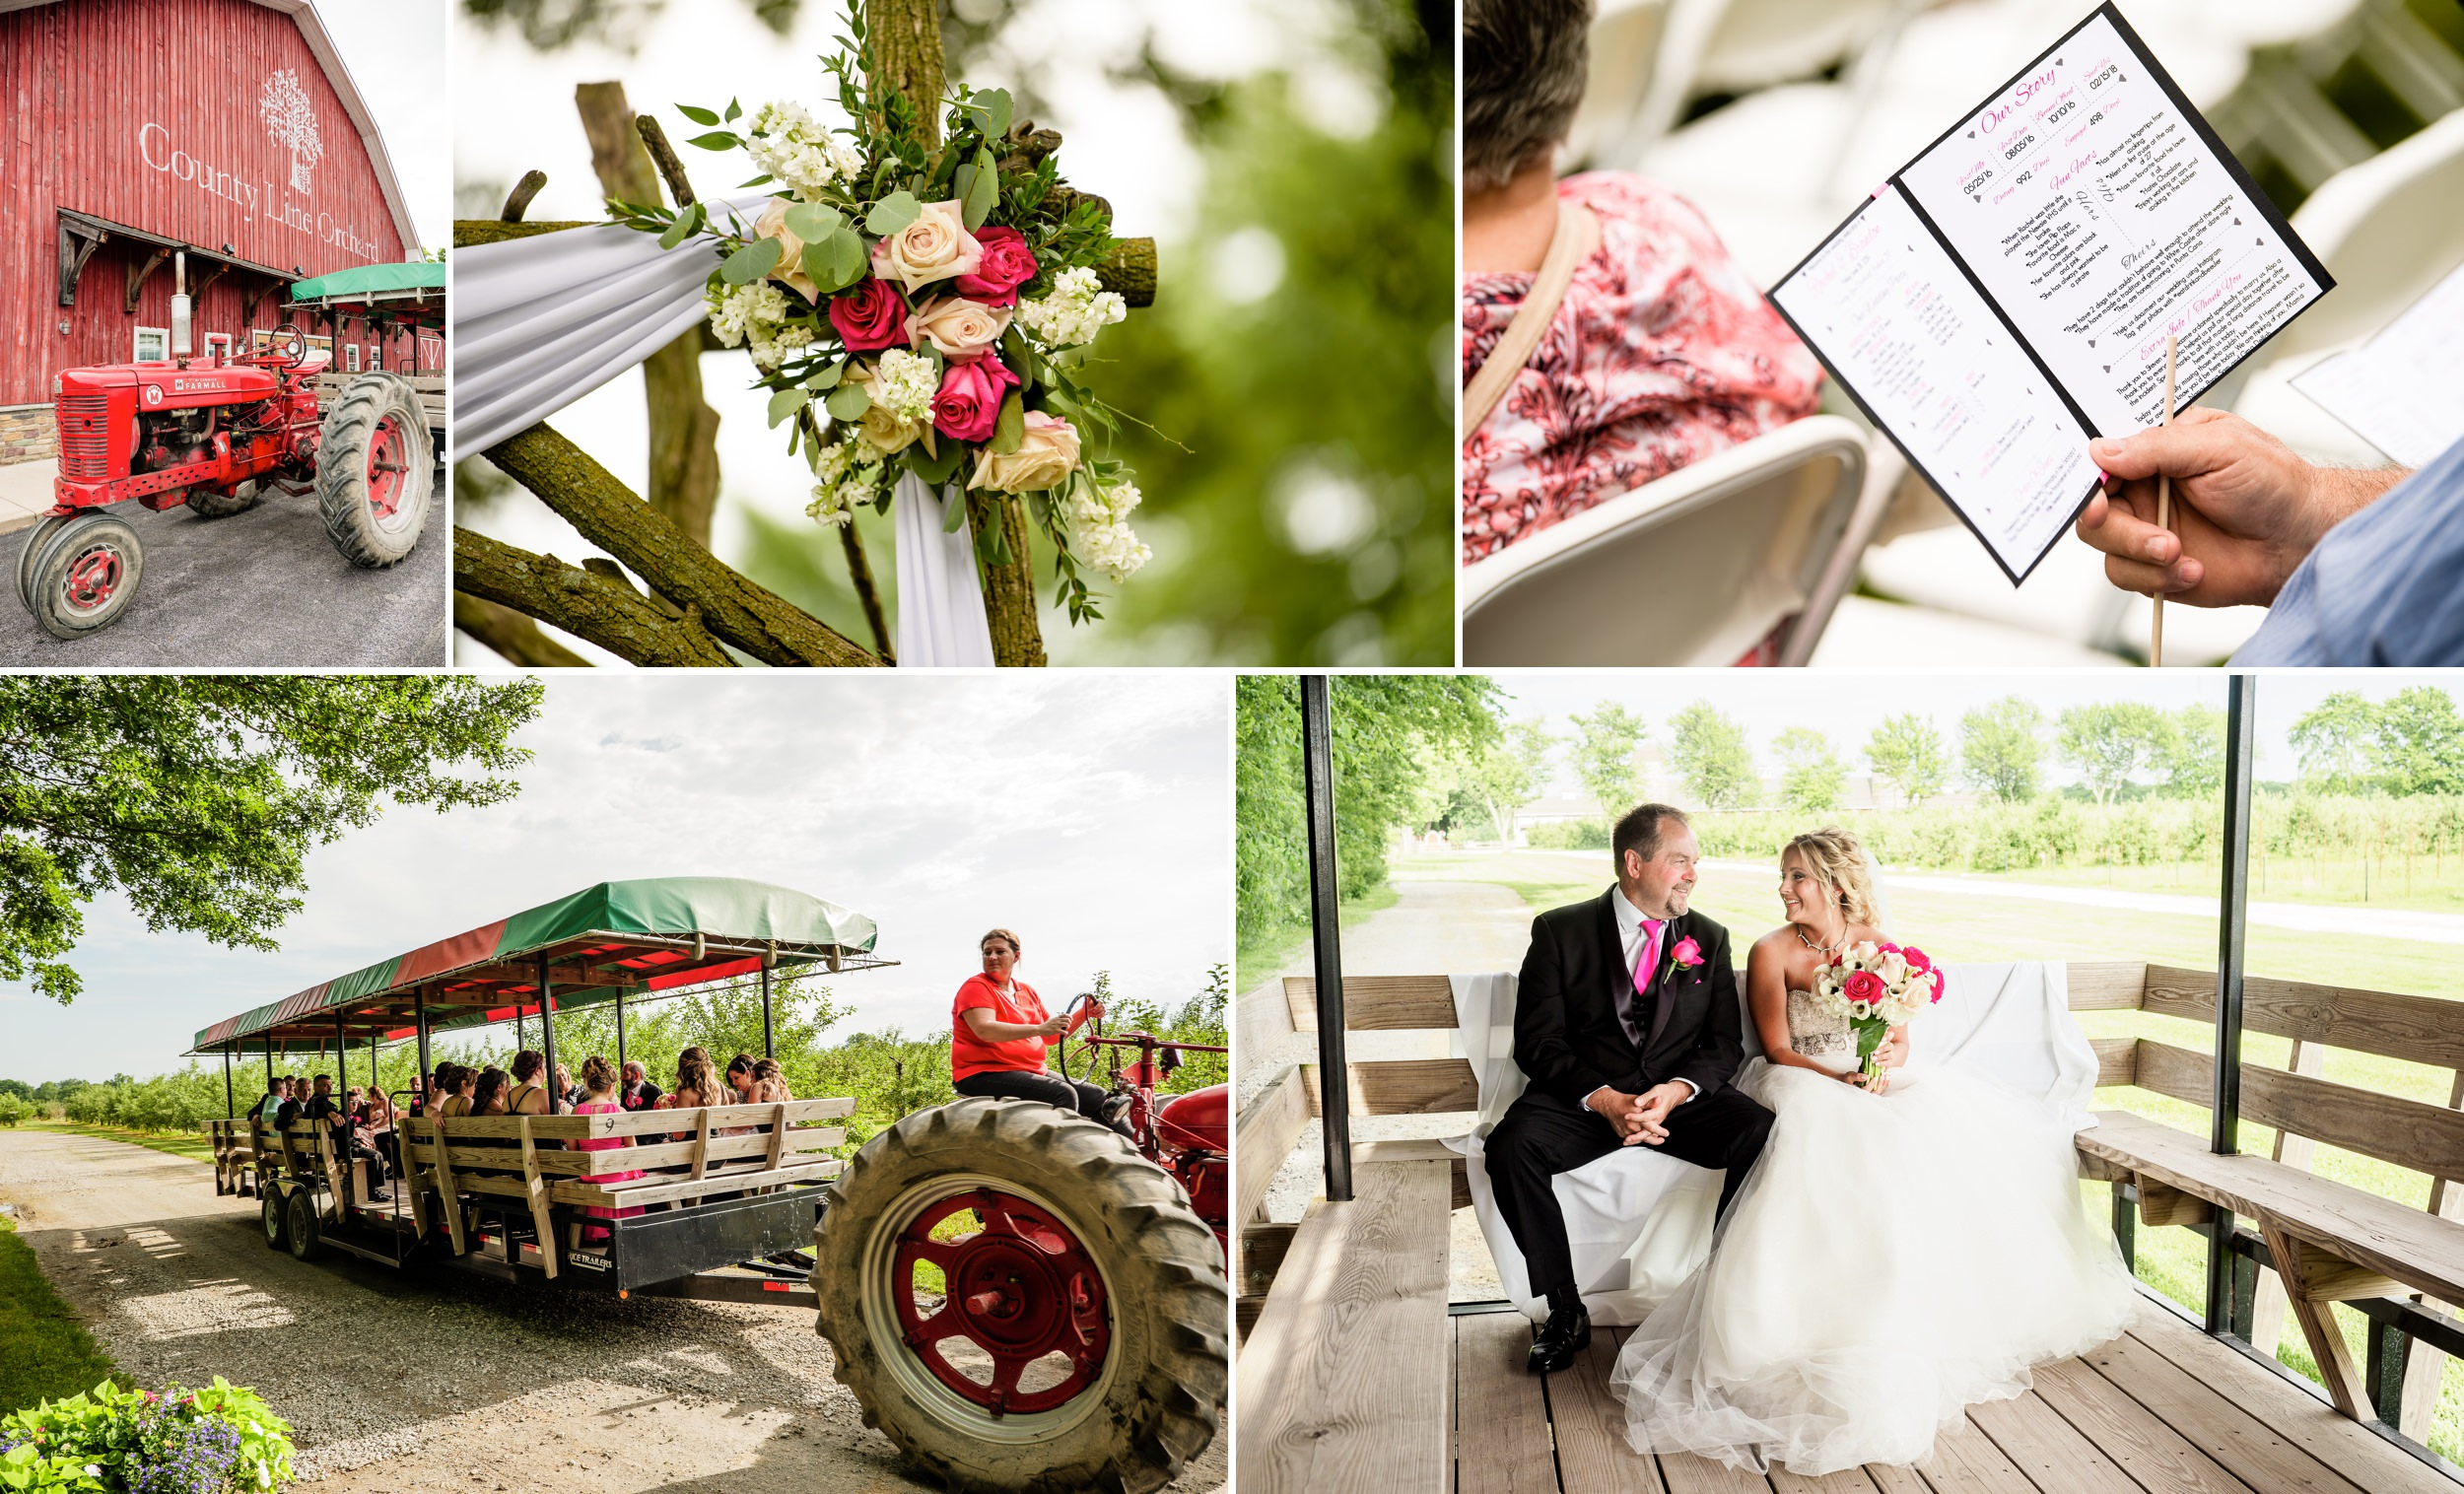 Rustic outdoor wedding at County Line Orchard.